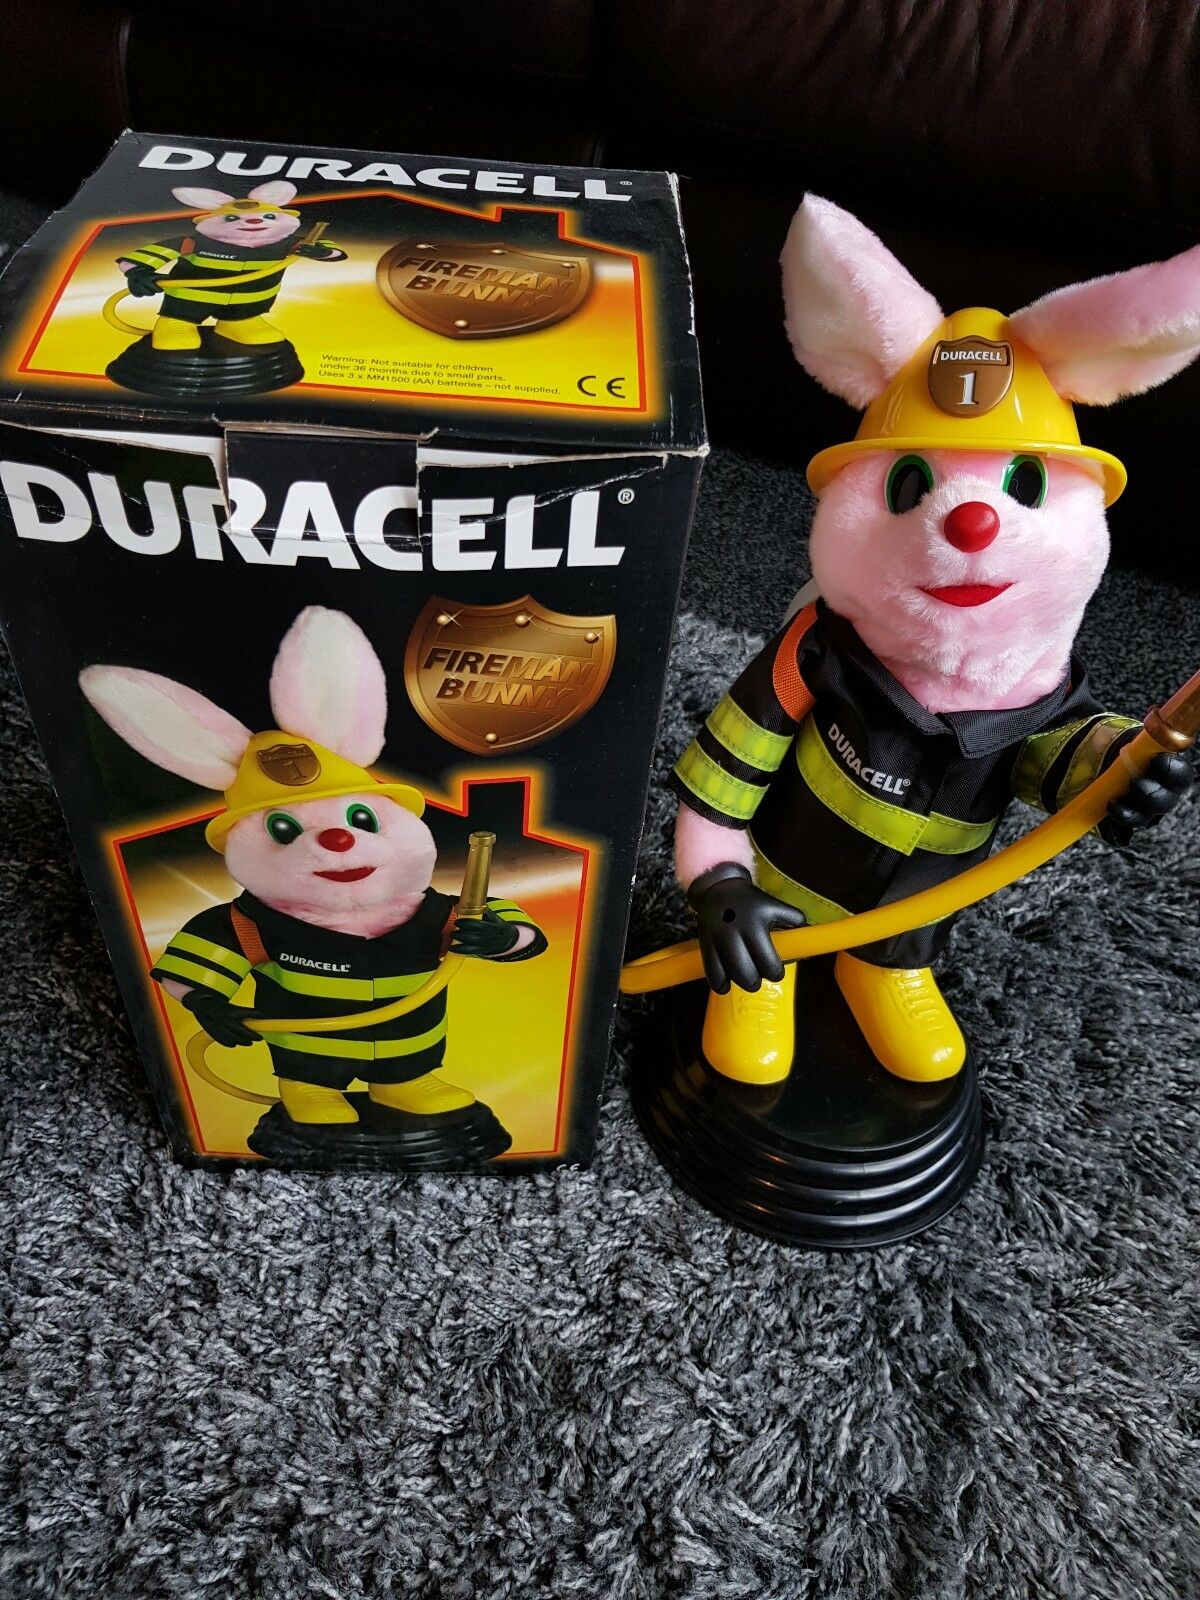 Duracell Fireman Firefighter Bunny Rare Lights & Sound Boxed